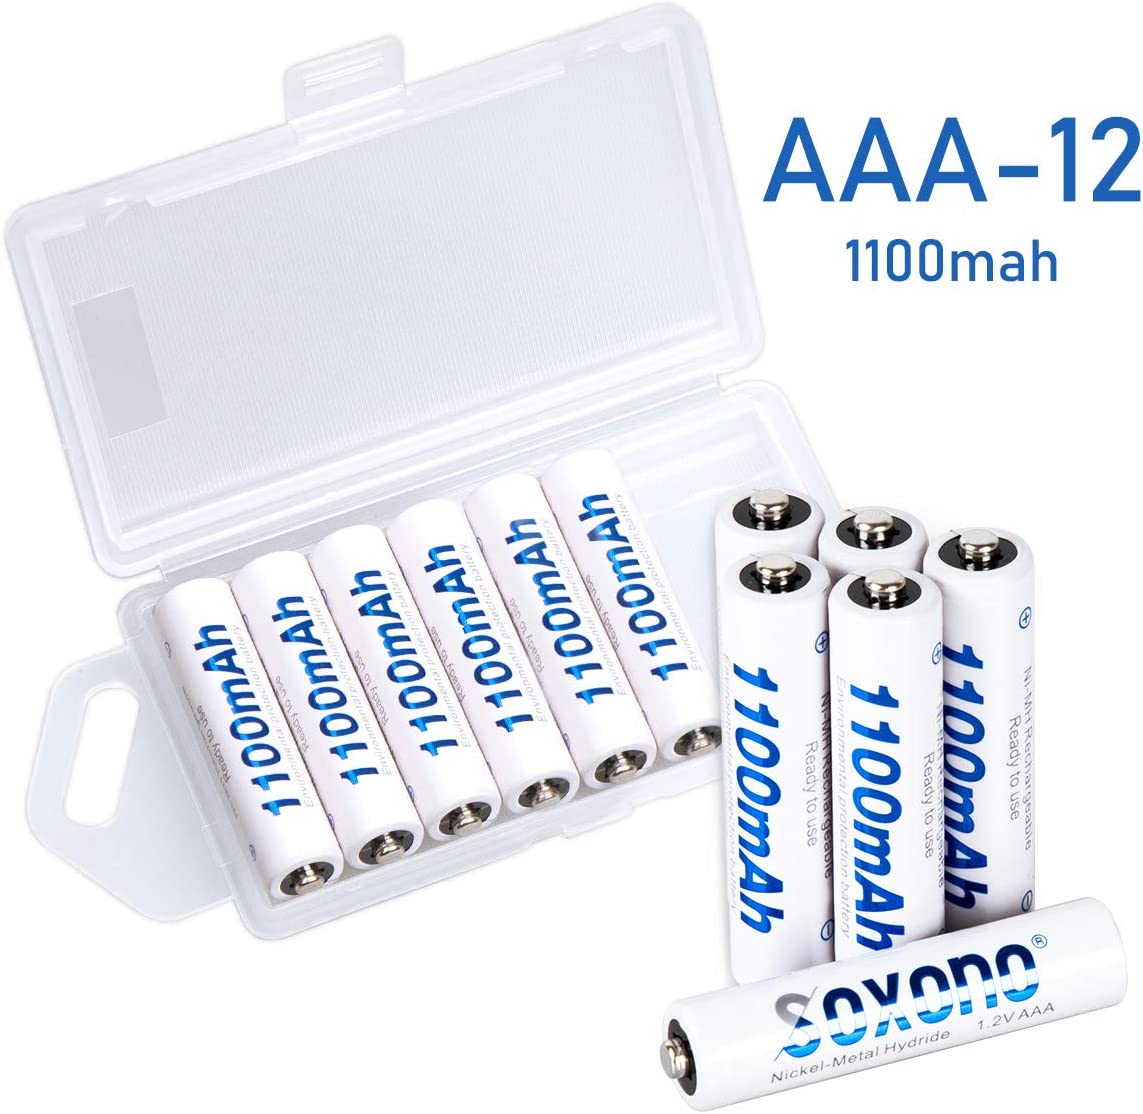 AAA Rechargeable Batteries, Soxono 12 Pack Rechargeable Triple A Batteries 1100mAh High Capacity 1.2V NiMH Low Self Discharge